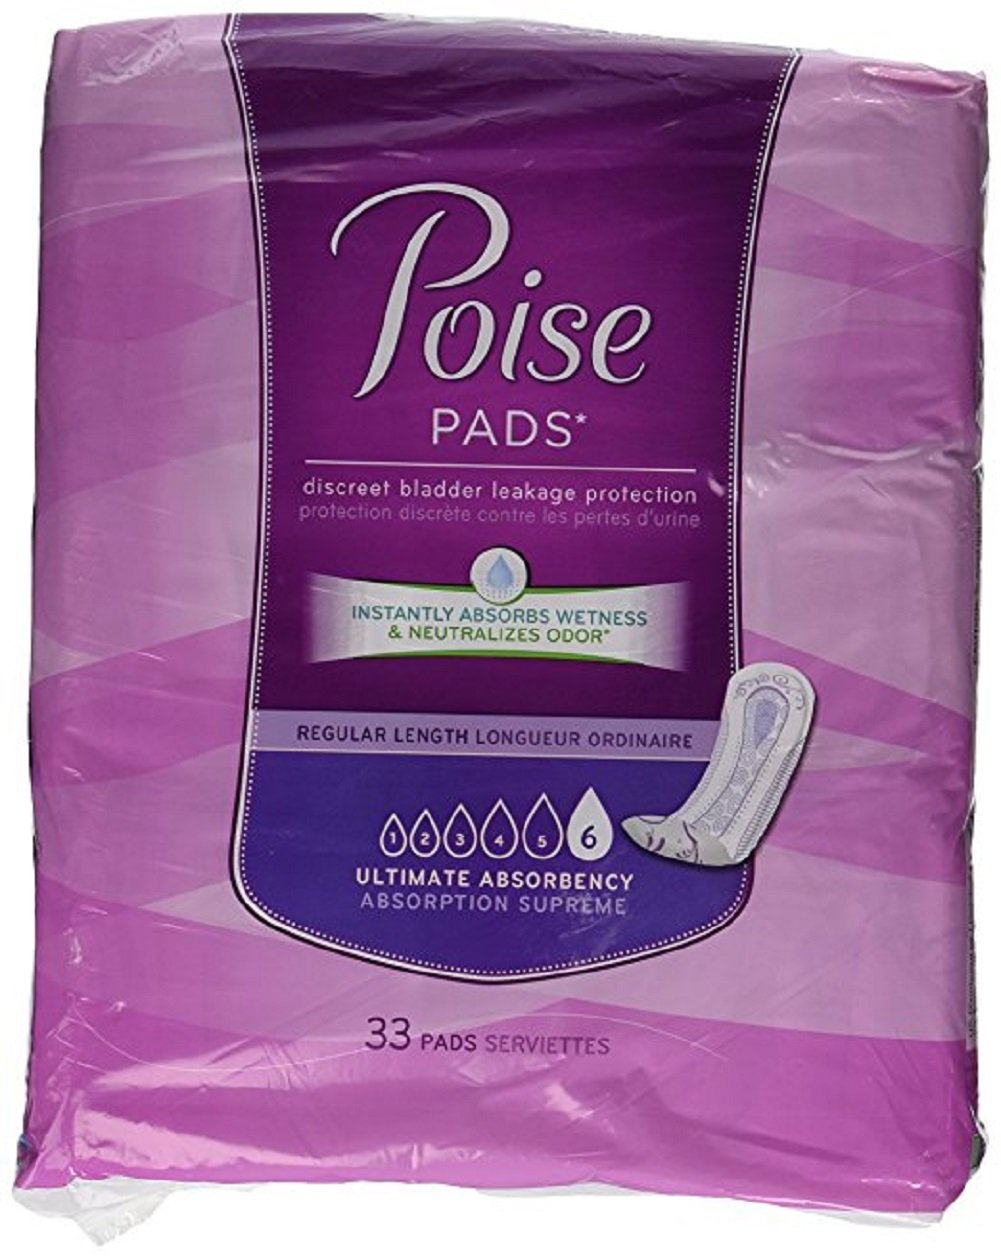 Poise Pads, Regular Length, Ultimate Absorbency 33 pads (Pack of 2)